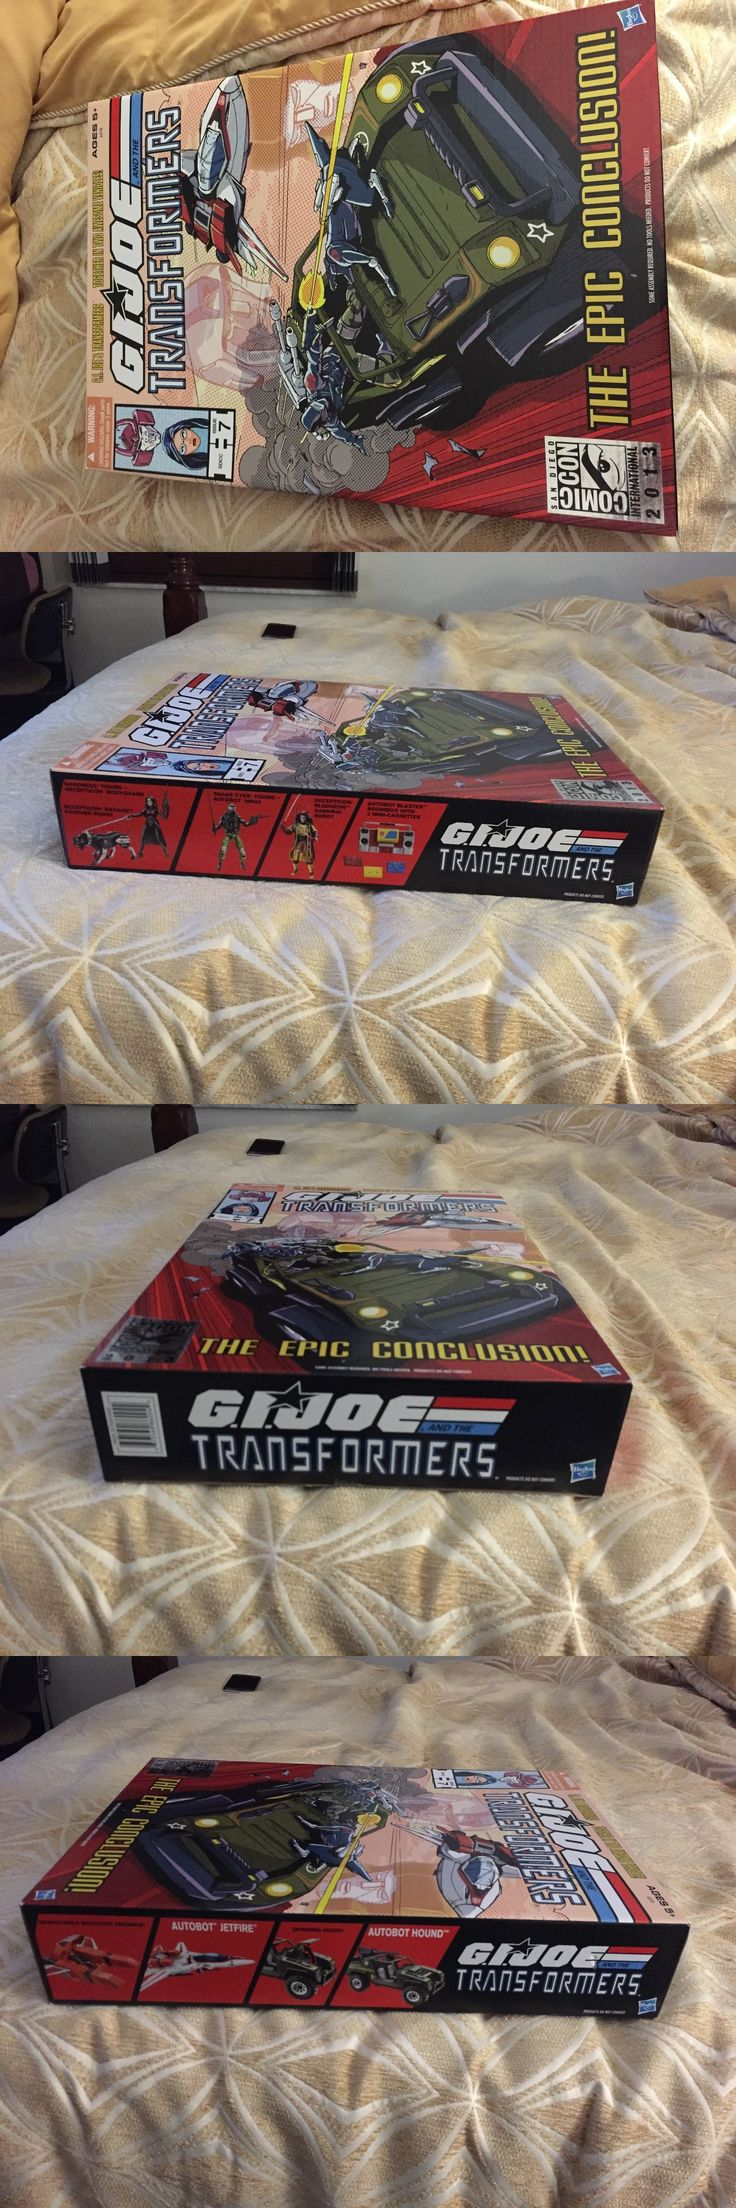 Transformers and Robots 83732: Sdcc 2013 Exclusive Set Gijoe Transformers The Epic Conclusion Jetfire And Hound -> BUY IT NOW ONLY: $140 on eBay!